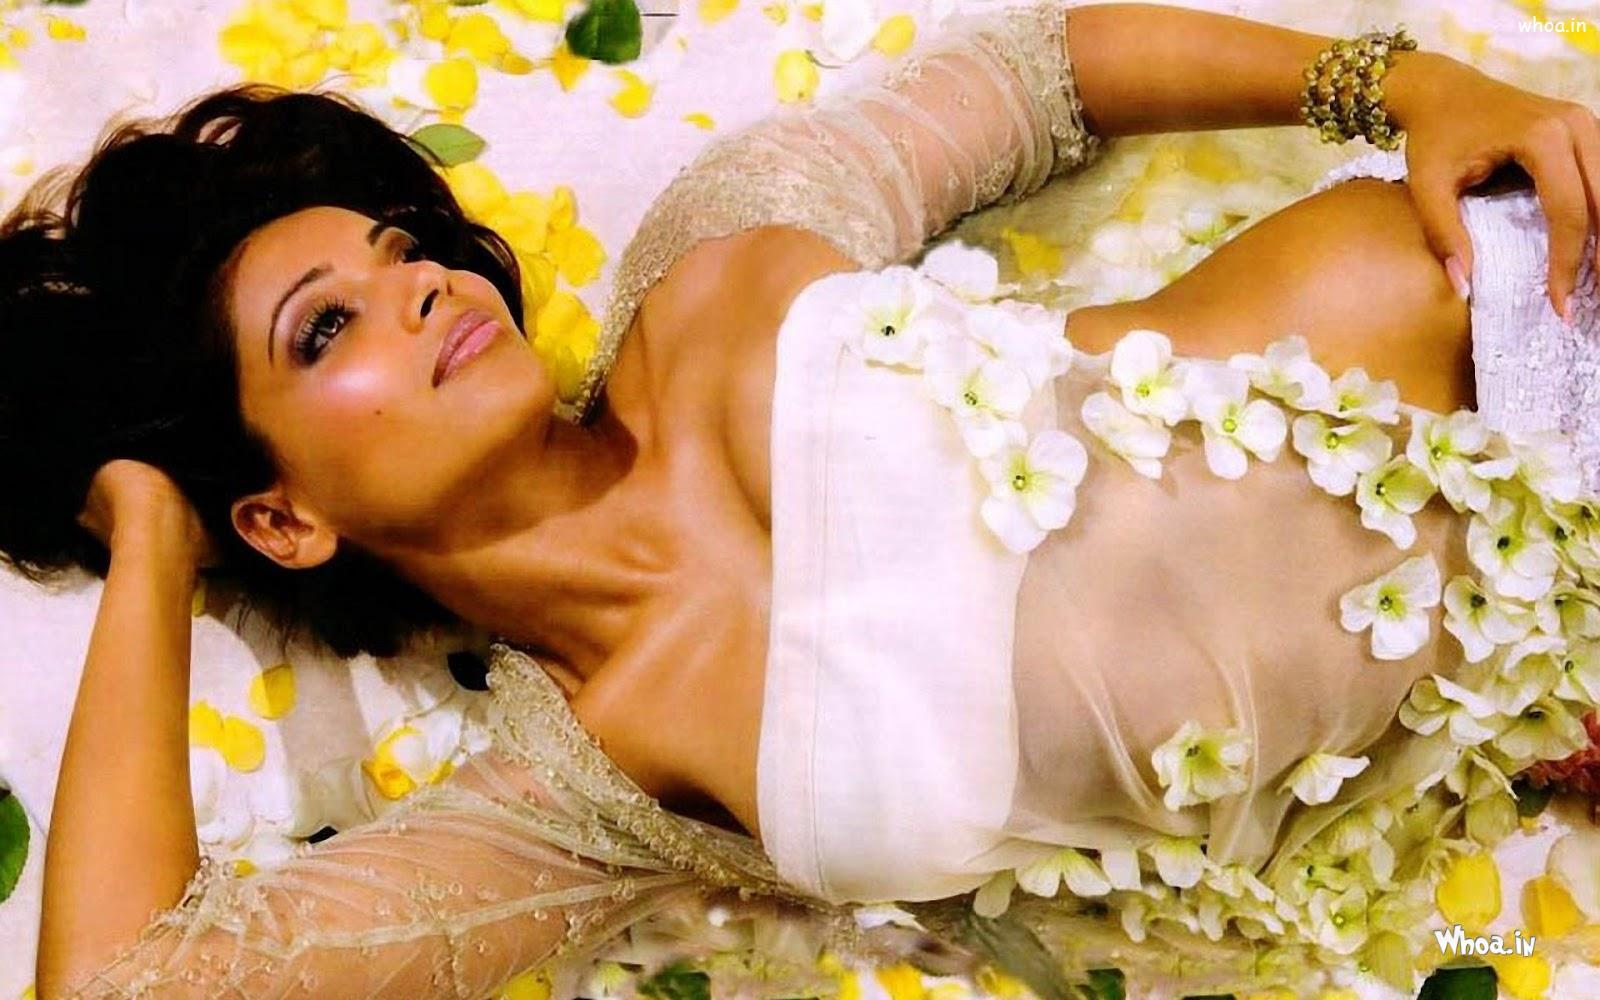 bipasha basu laying on a bed with flowres hot hd wallpaper